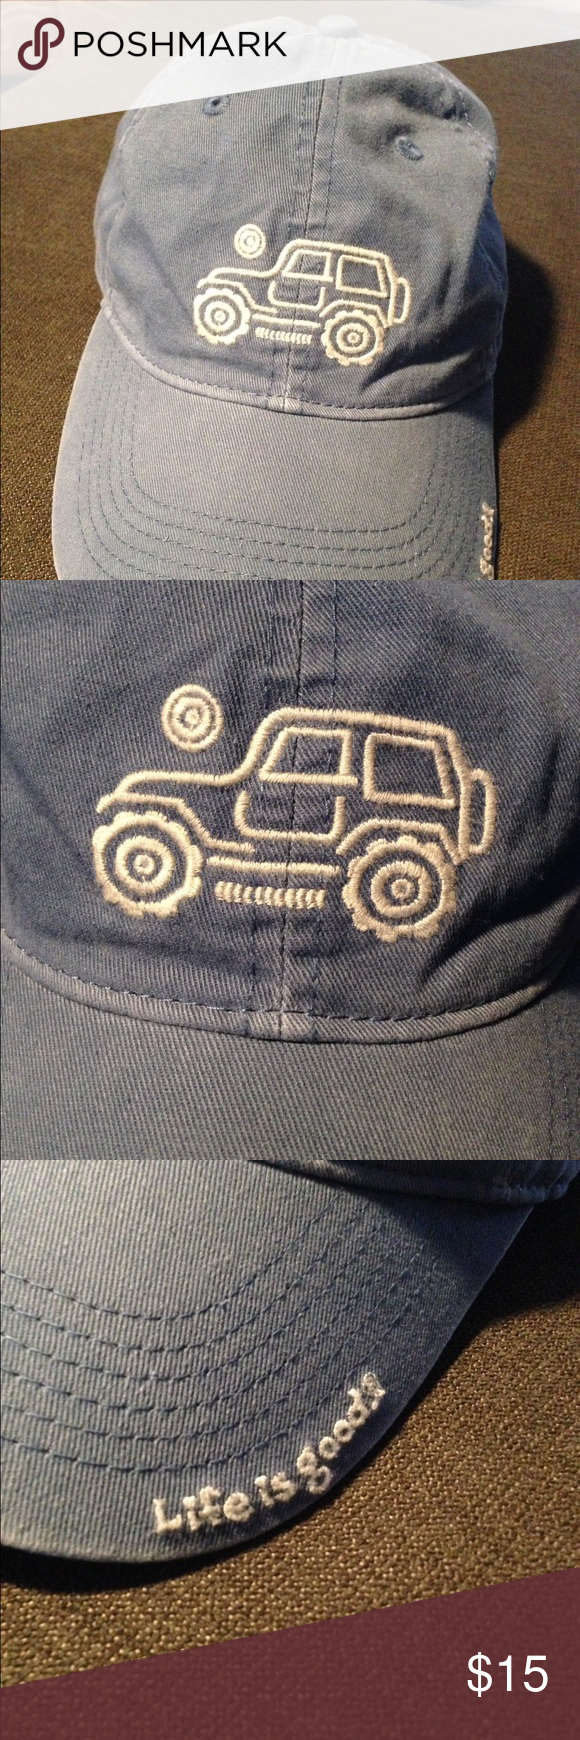 8c91e358 Life is good jeep boys baseball hat new Life is good jeep boys baseball hat.  new no tag. blue. Adjustable snap in back. Jeep embroidered on front.